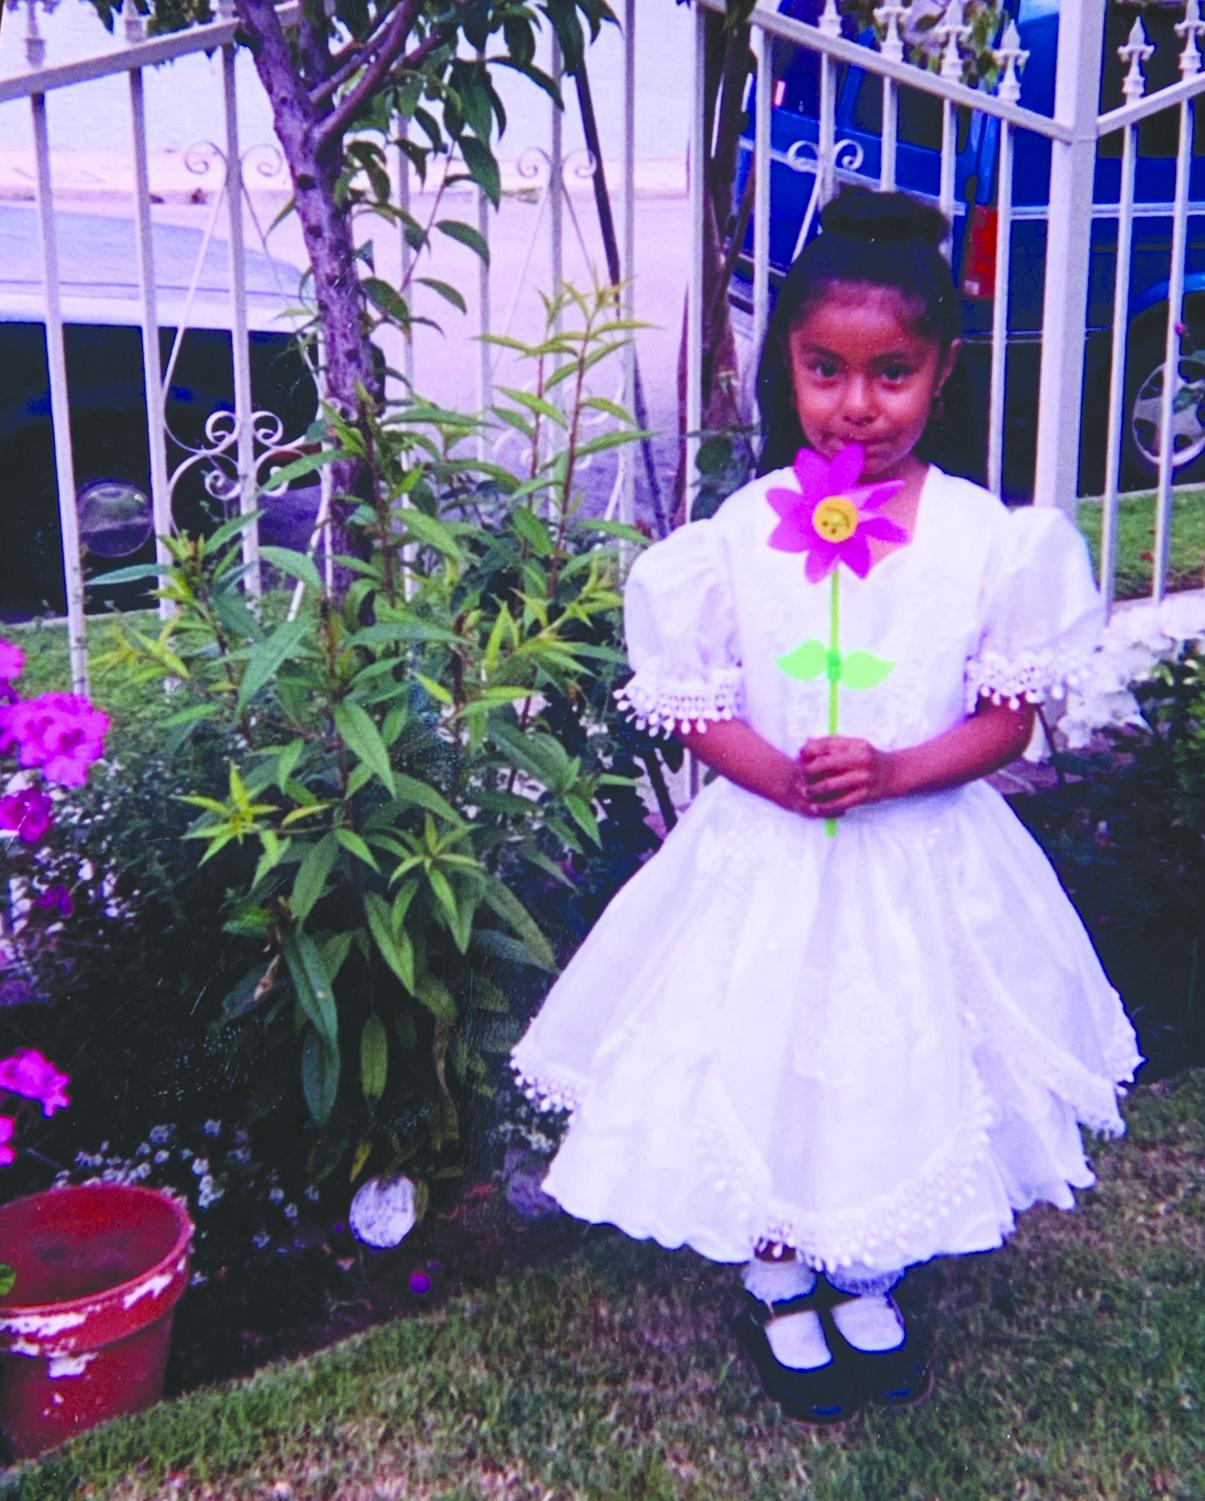 Rosio Flores was dressed in white at age 3 in South Central L.A. on the day of her presentación, a religious ceremony.